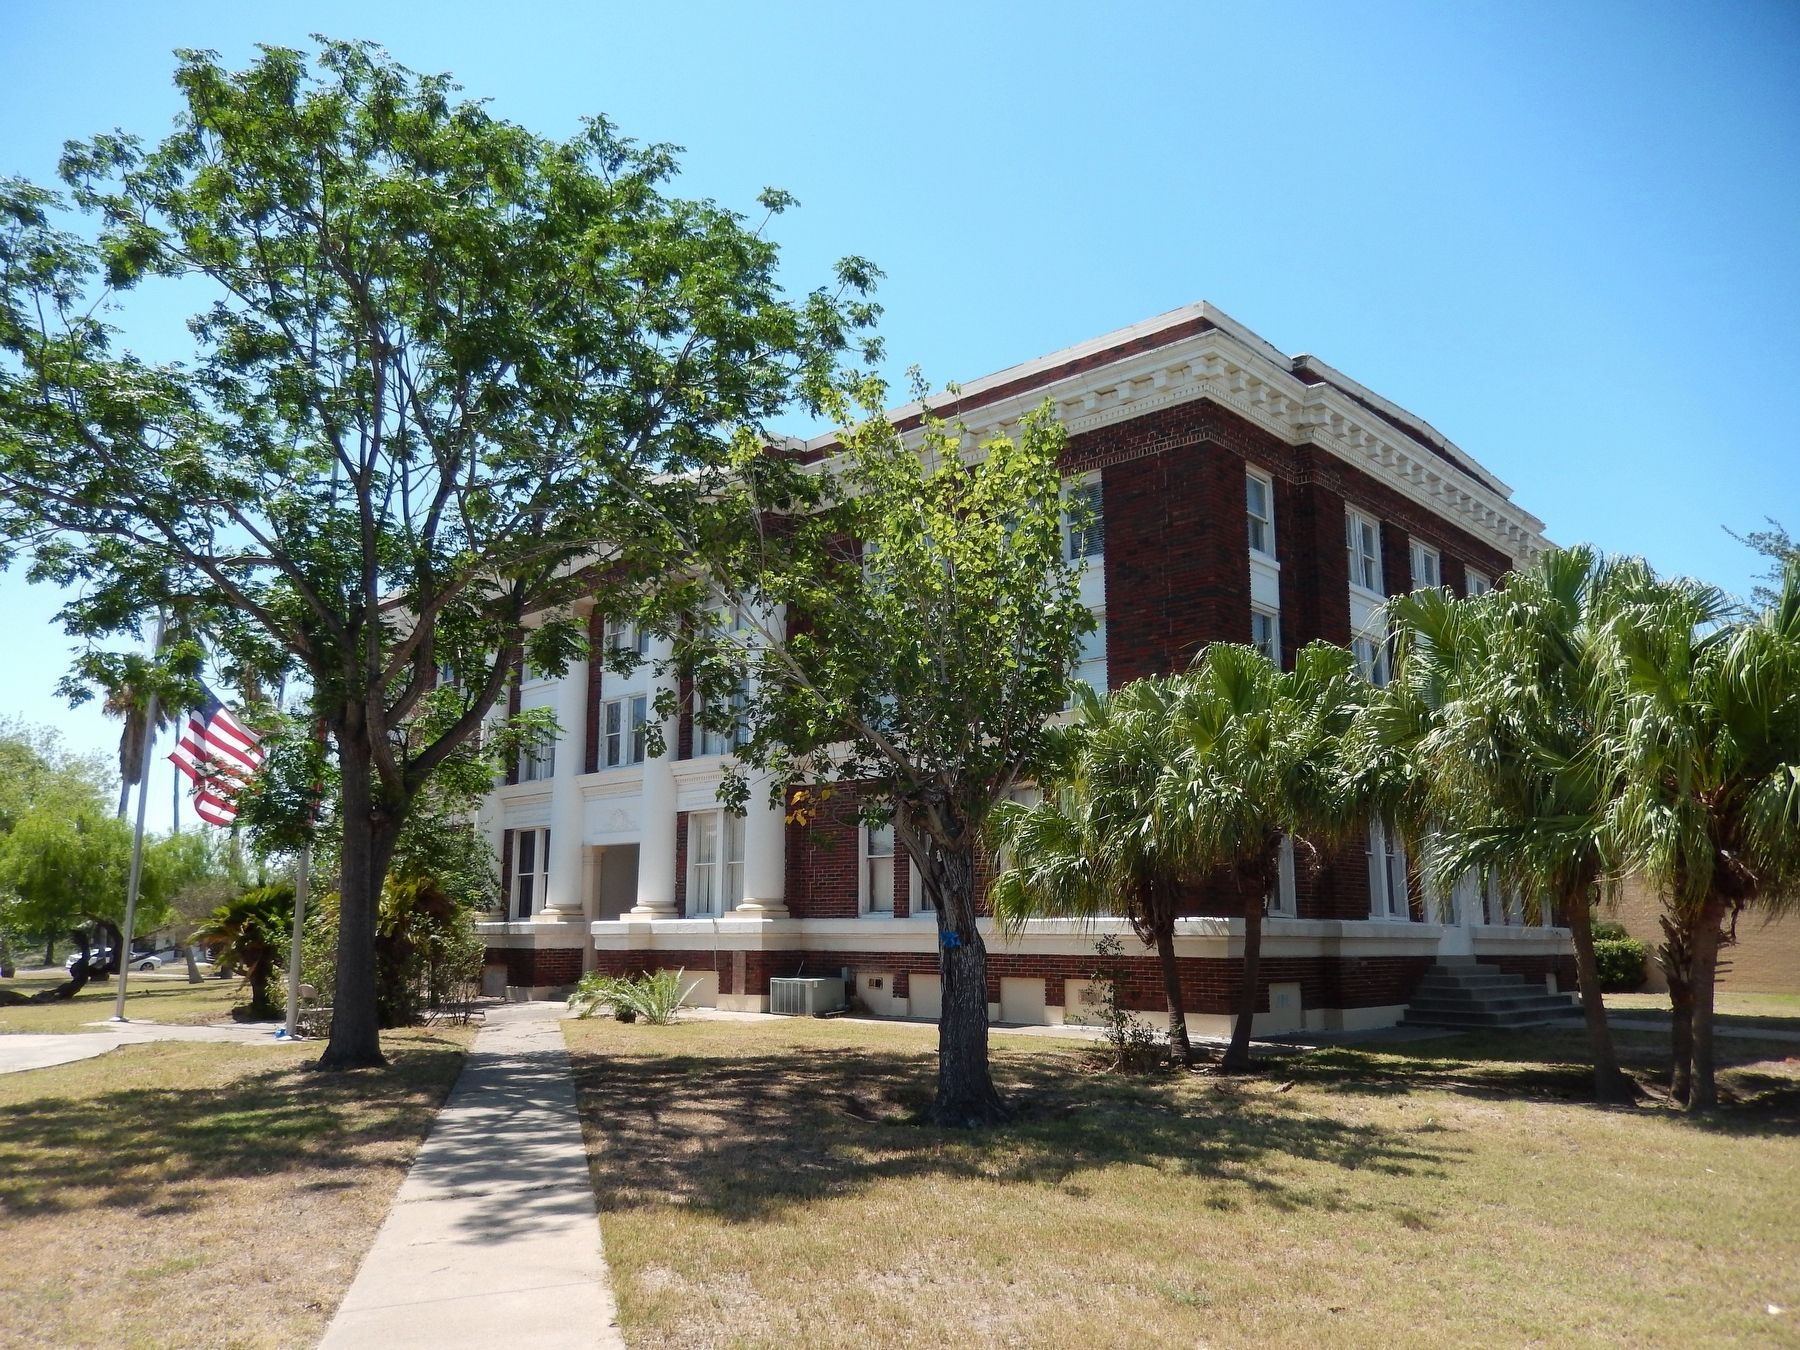 Willacy County Courthouse (<i>view from near marker</i>) image. Click for full size.